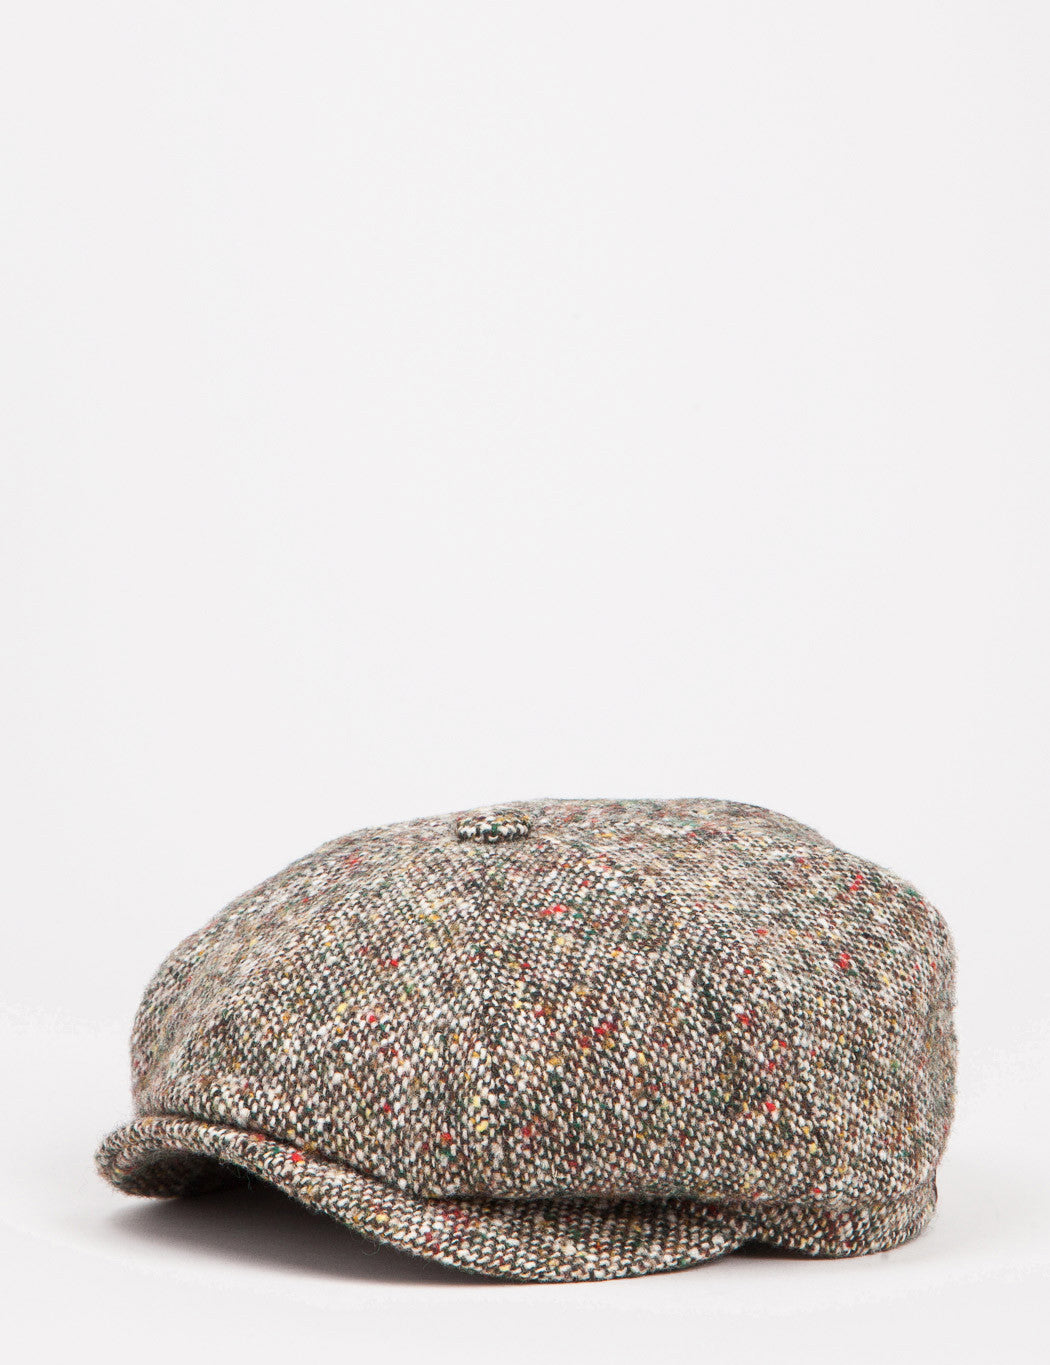 Stetson Hatteras Donegal Newsboy Cap - Brown